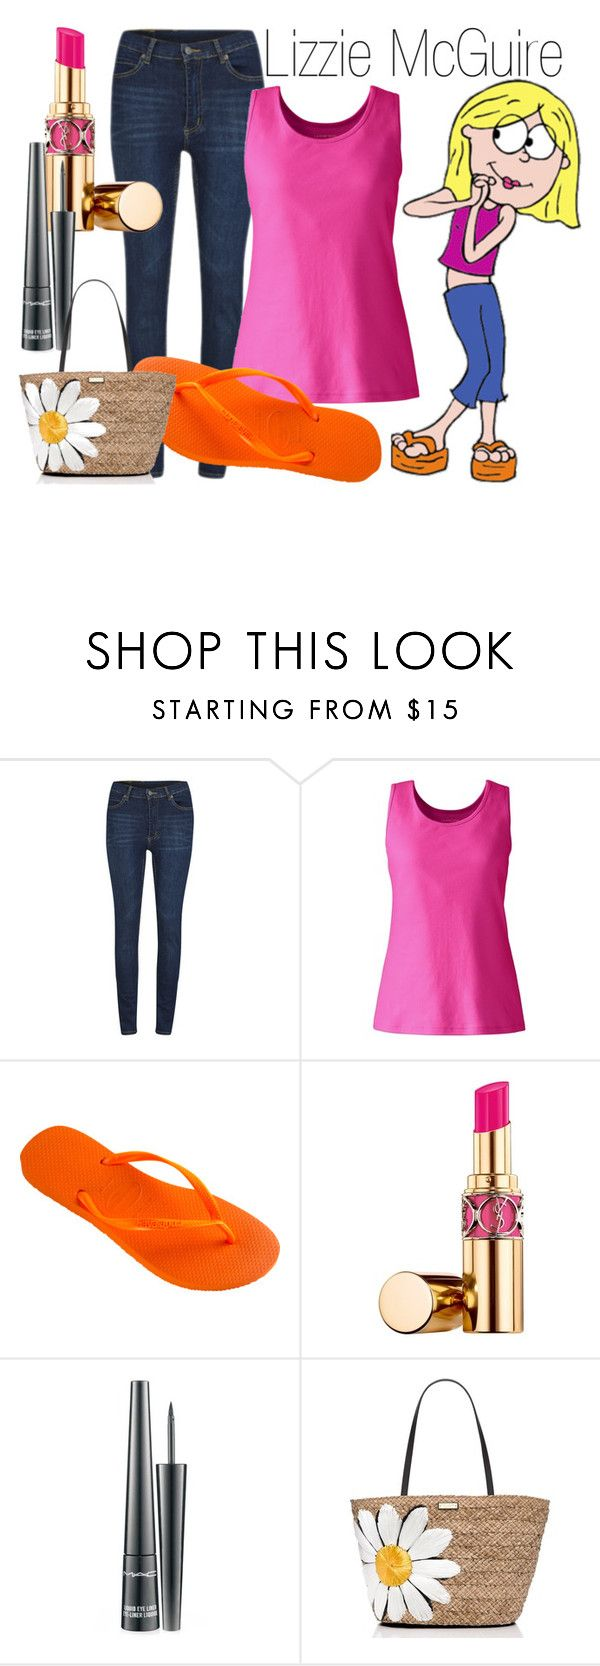 """Lizzie McGuire~ DisneyBound"" by basic-disney ❤ liked on Polyvore featuring McGuire, Cheap Monday, Lands' End, Havaianas, Yves Saint Laurent, MAC Cosmetics and Kate Spade"